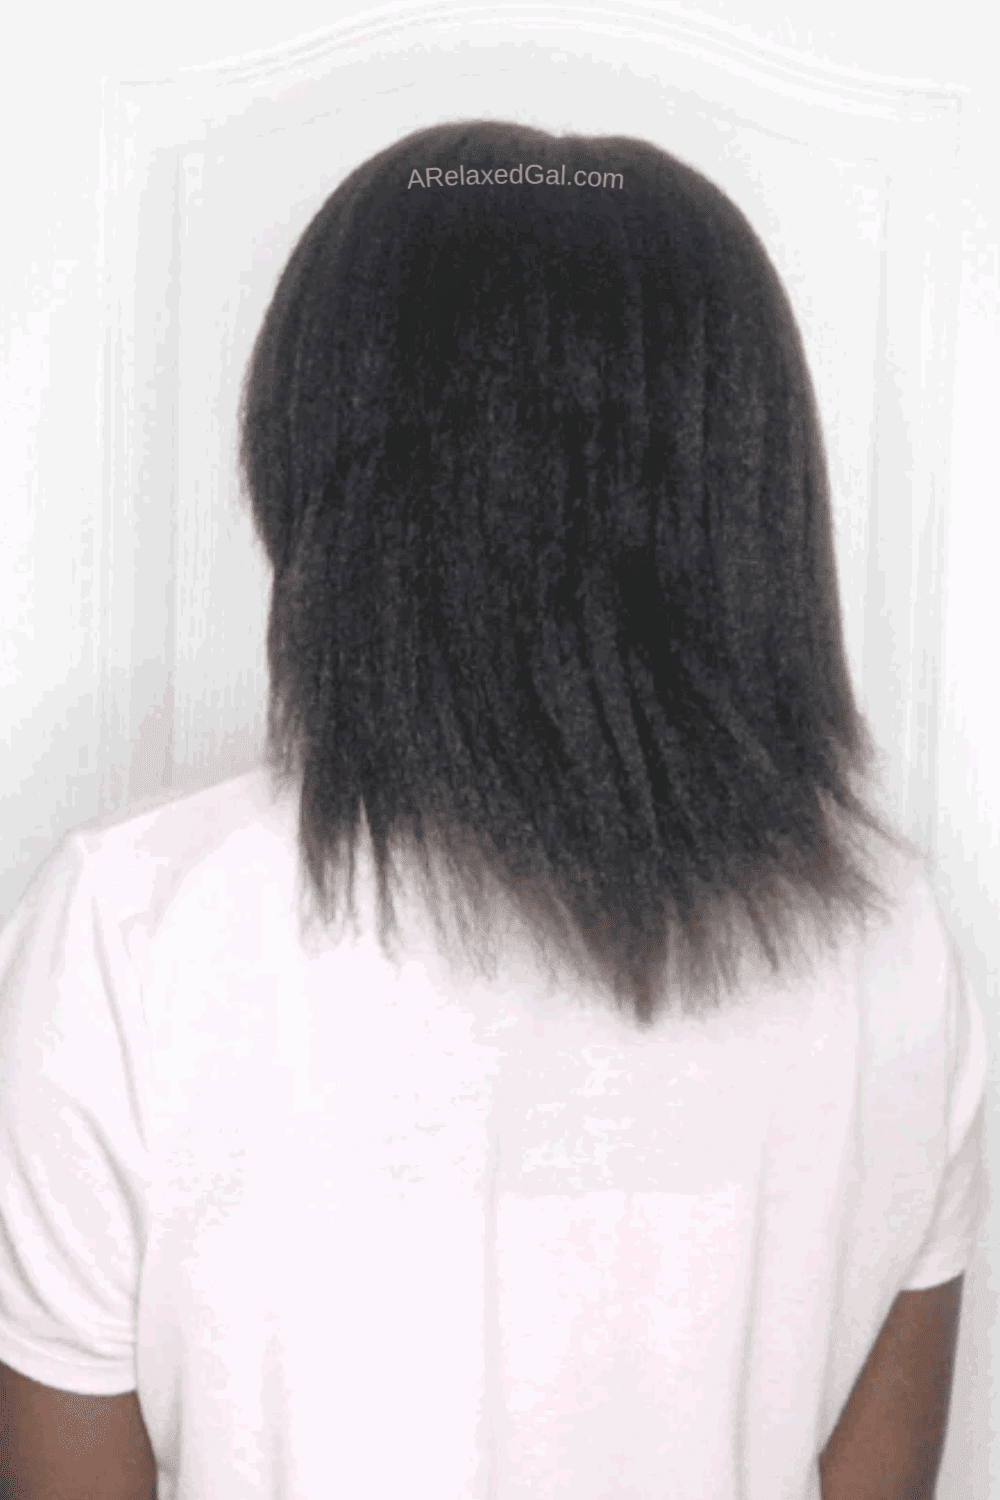 Adding proteins to relaxed hair regimen | A Relaxed Gal